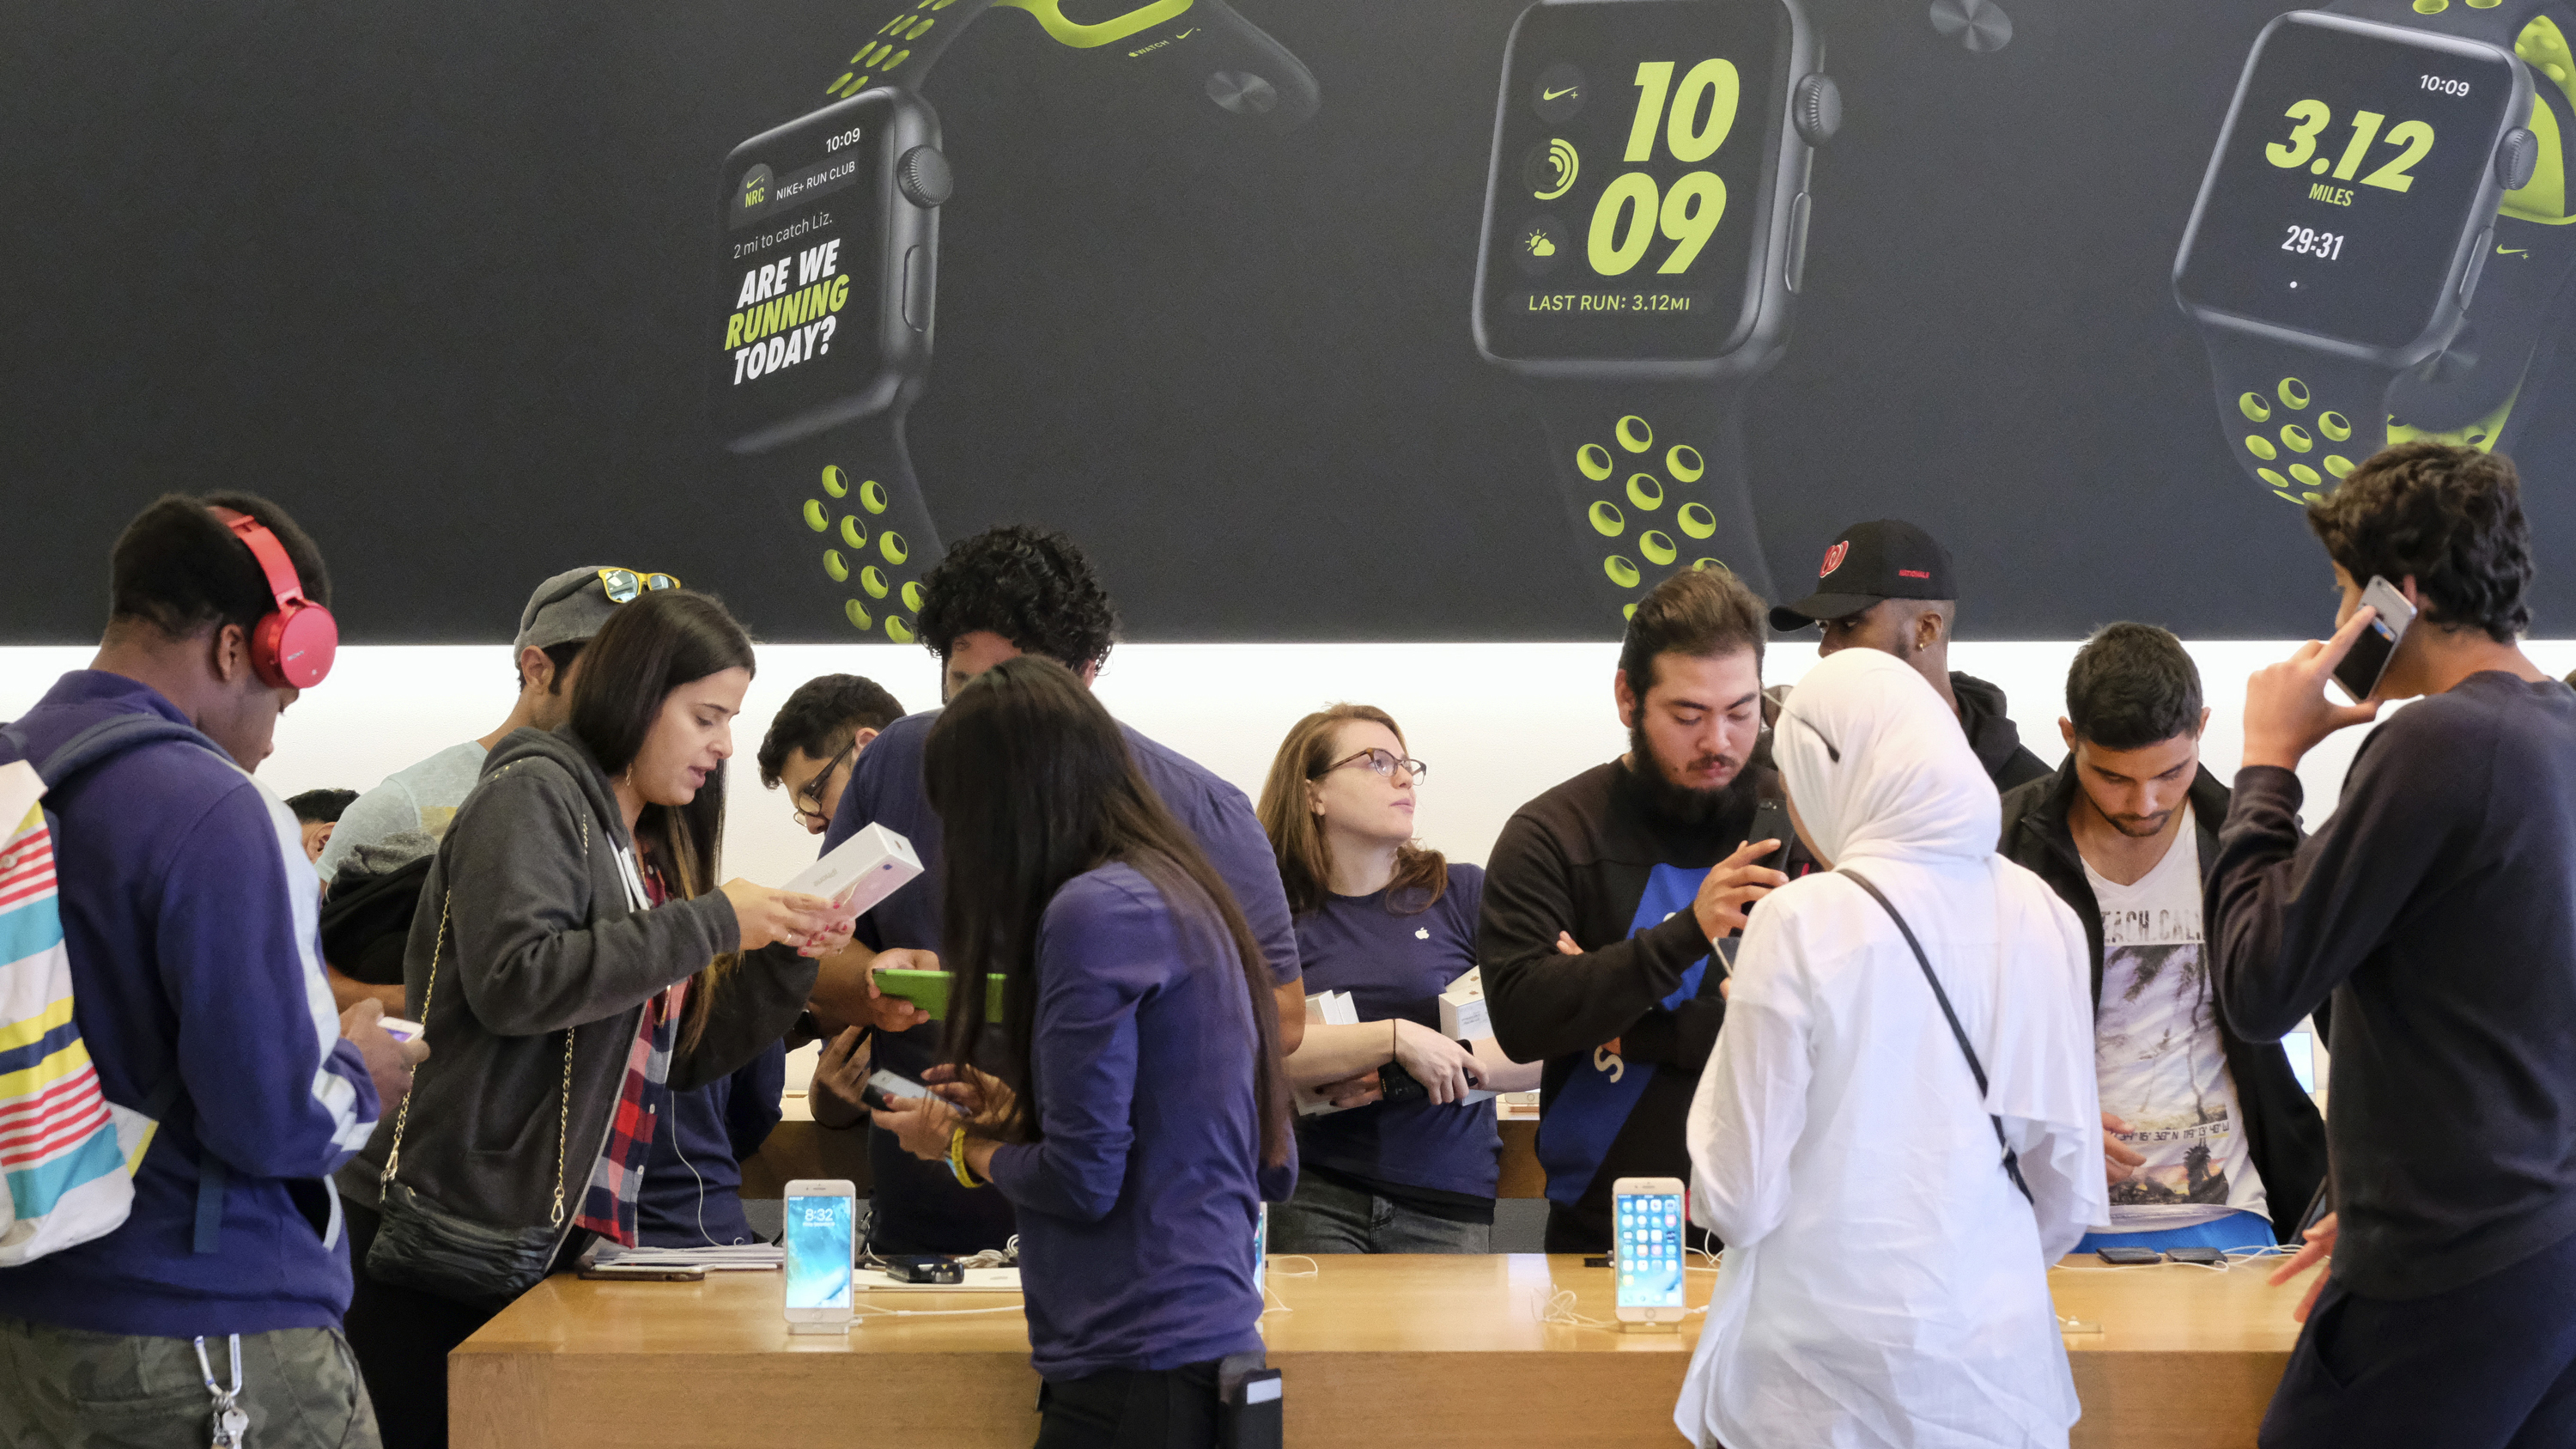 Customers check out the new Apple iPhone 7 at the Apple Store at the Grove in Los Angeles on Friday, Sept. 16, 2016. The latest Apple Watches and iPhone 7 were released Friday. (AP Photo/Richard Vogel)